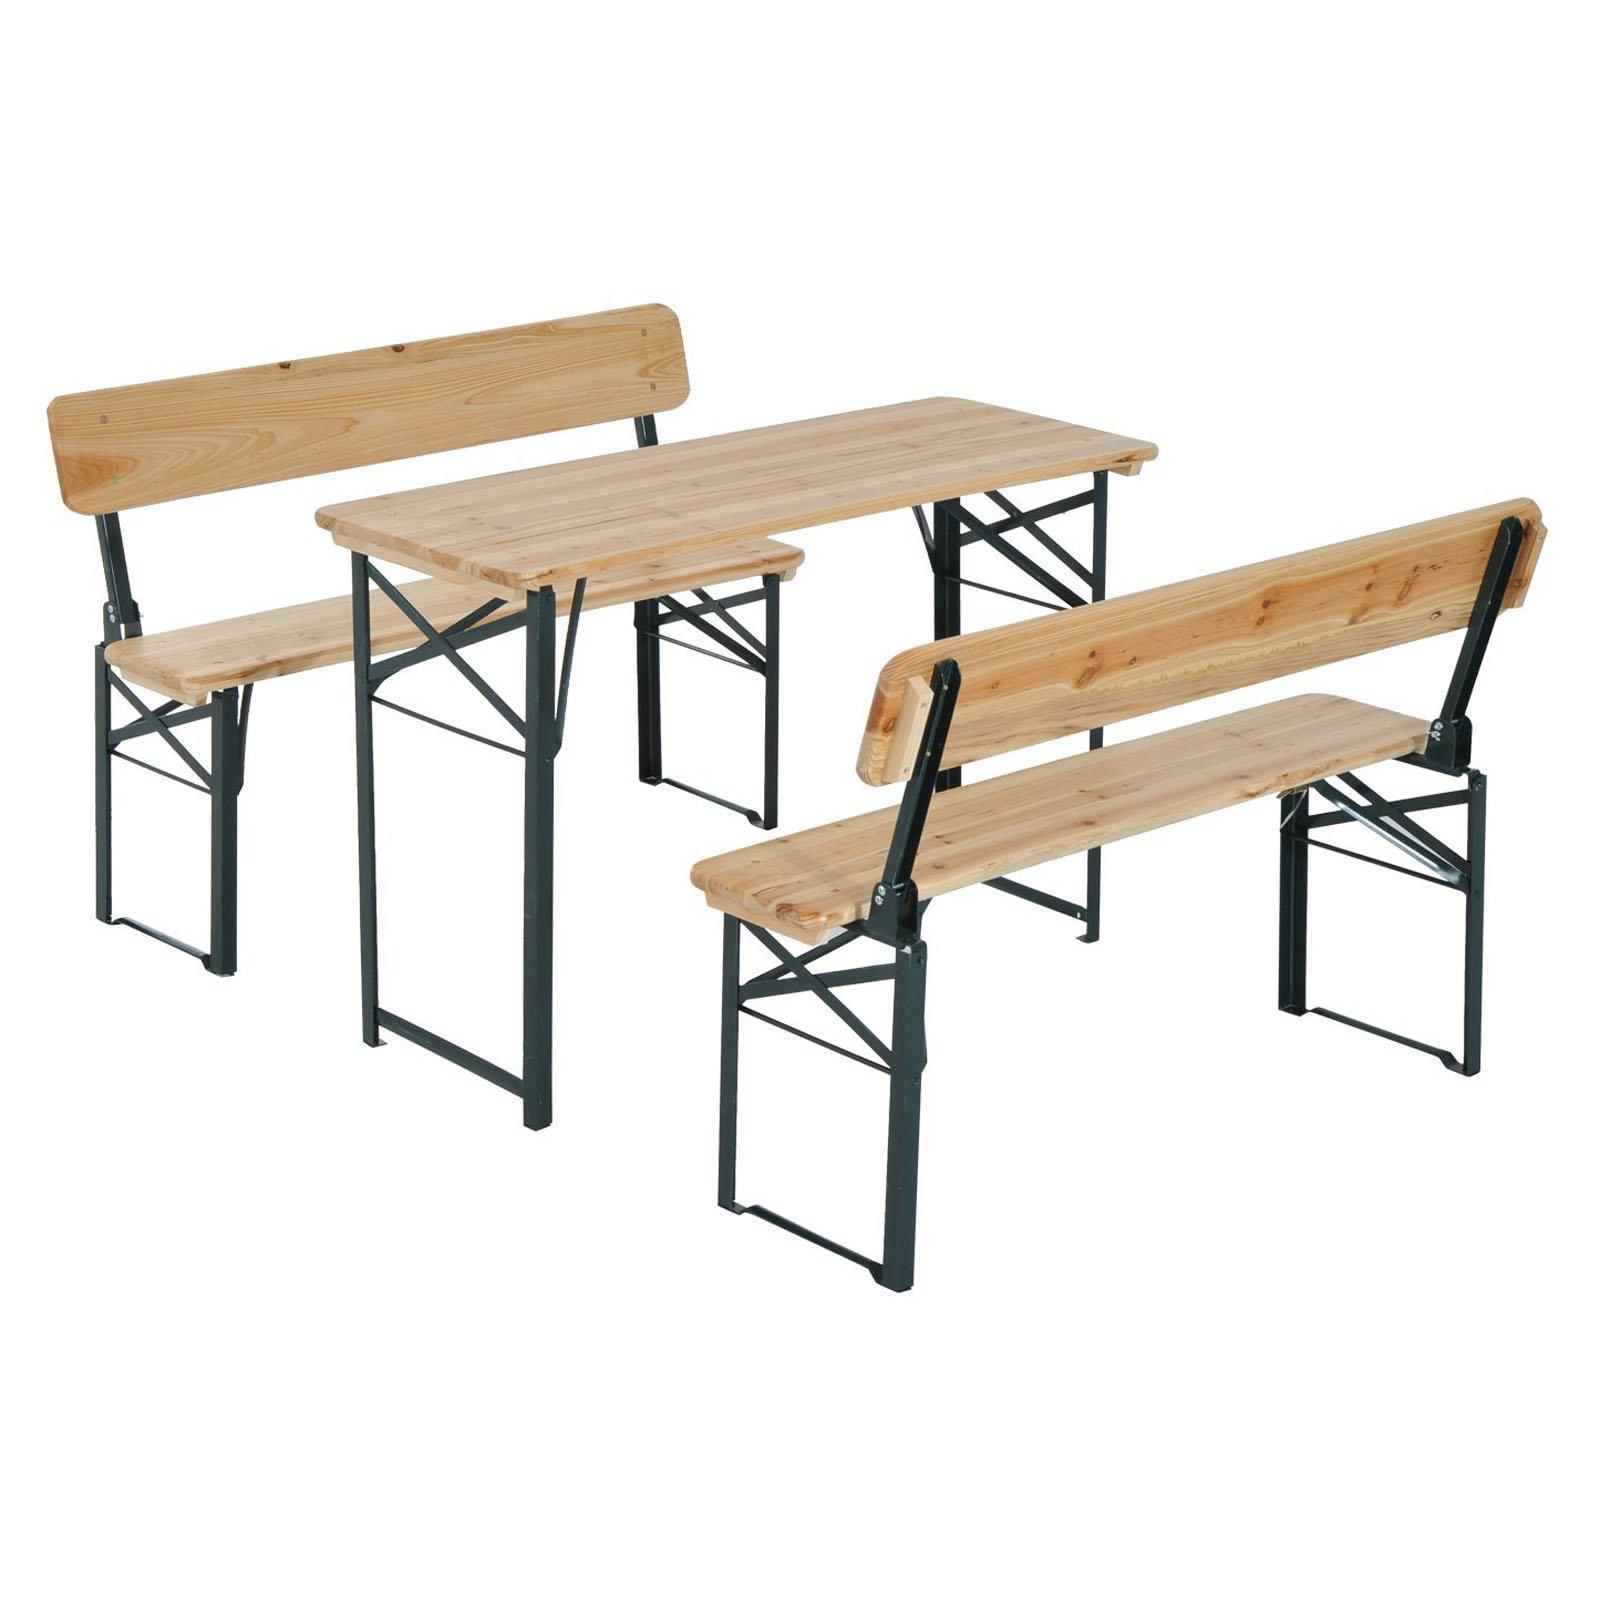 Outsunny Wooden 4 ft. Folding Picnic Table Set with Benches